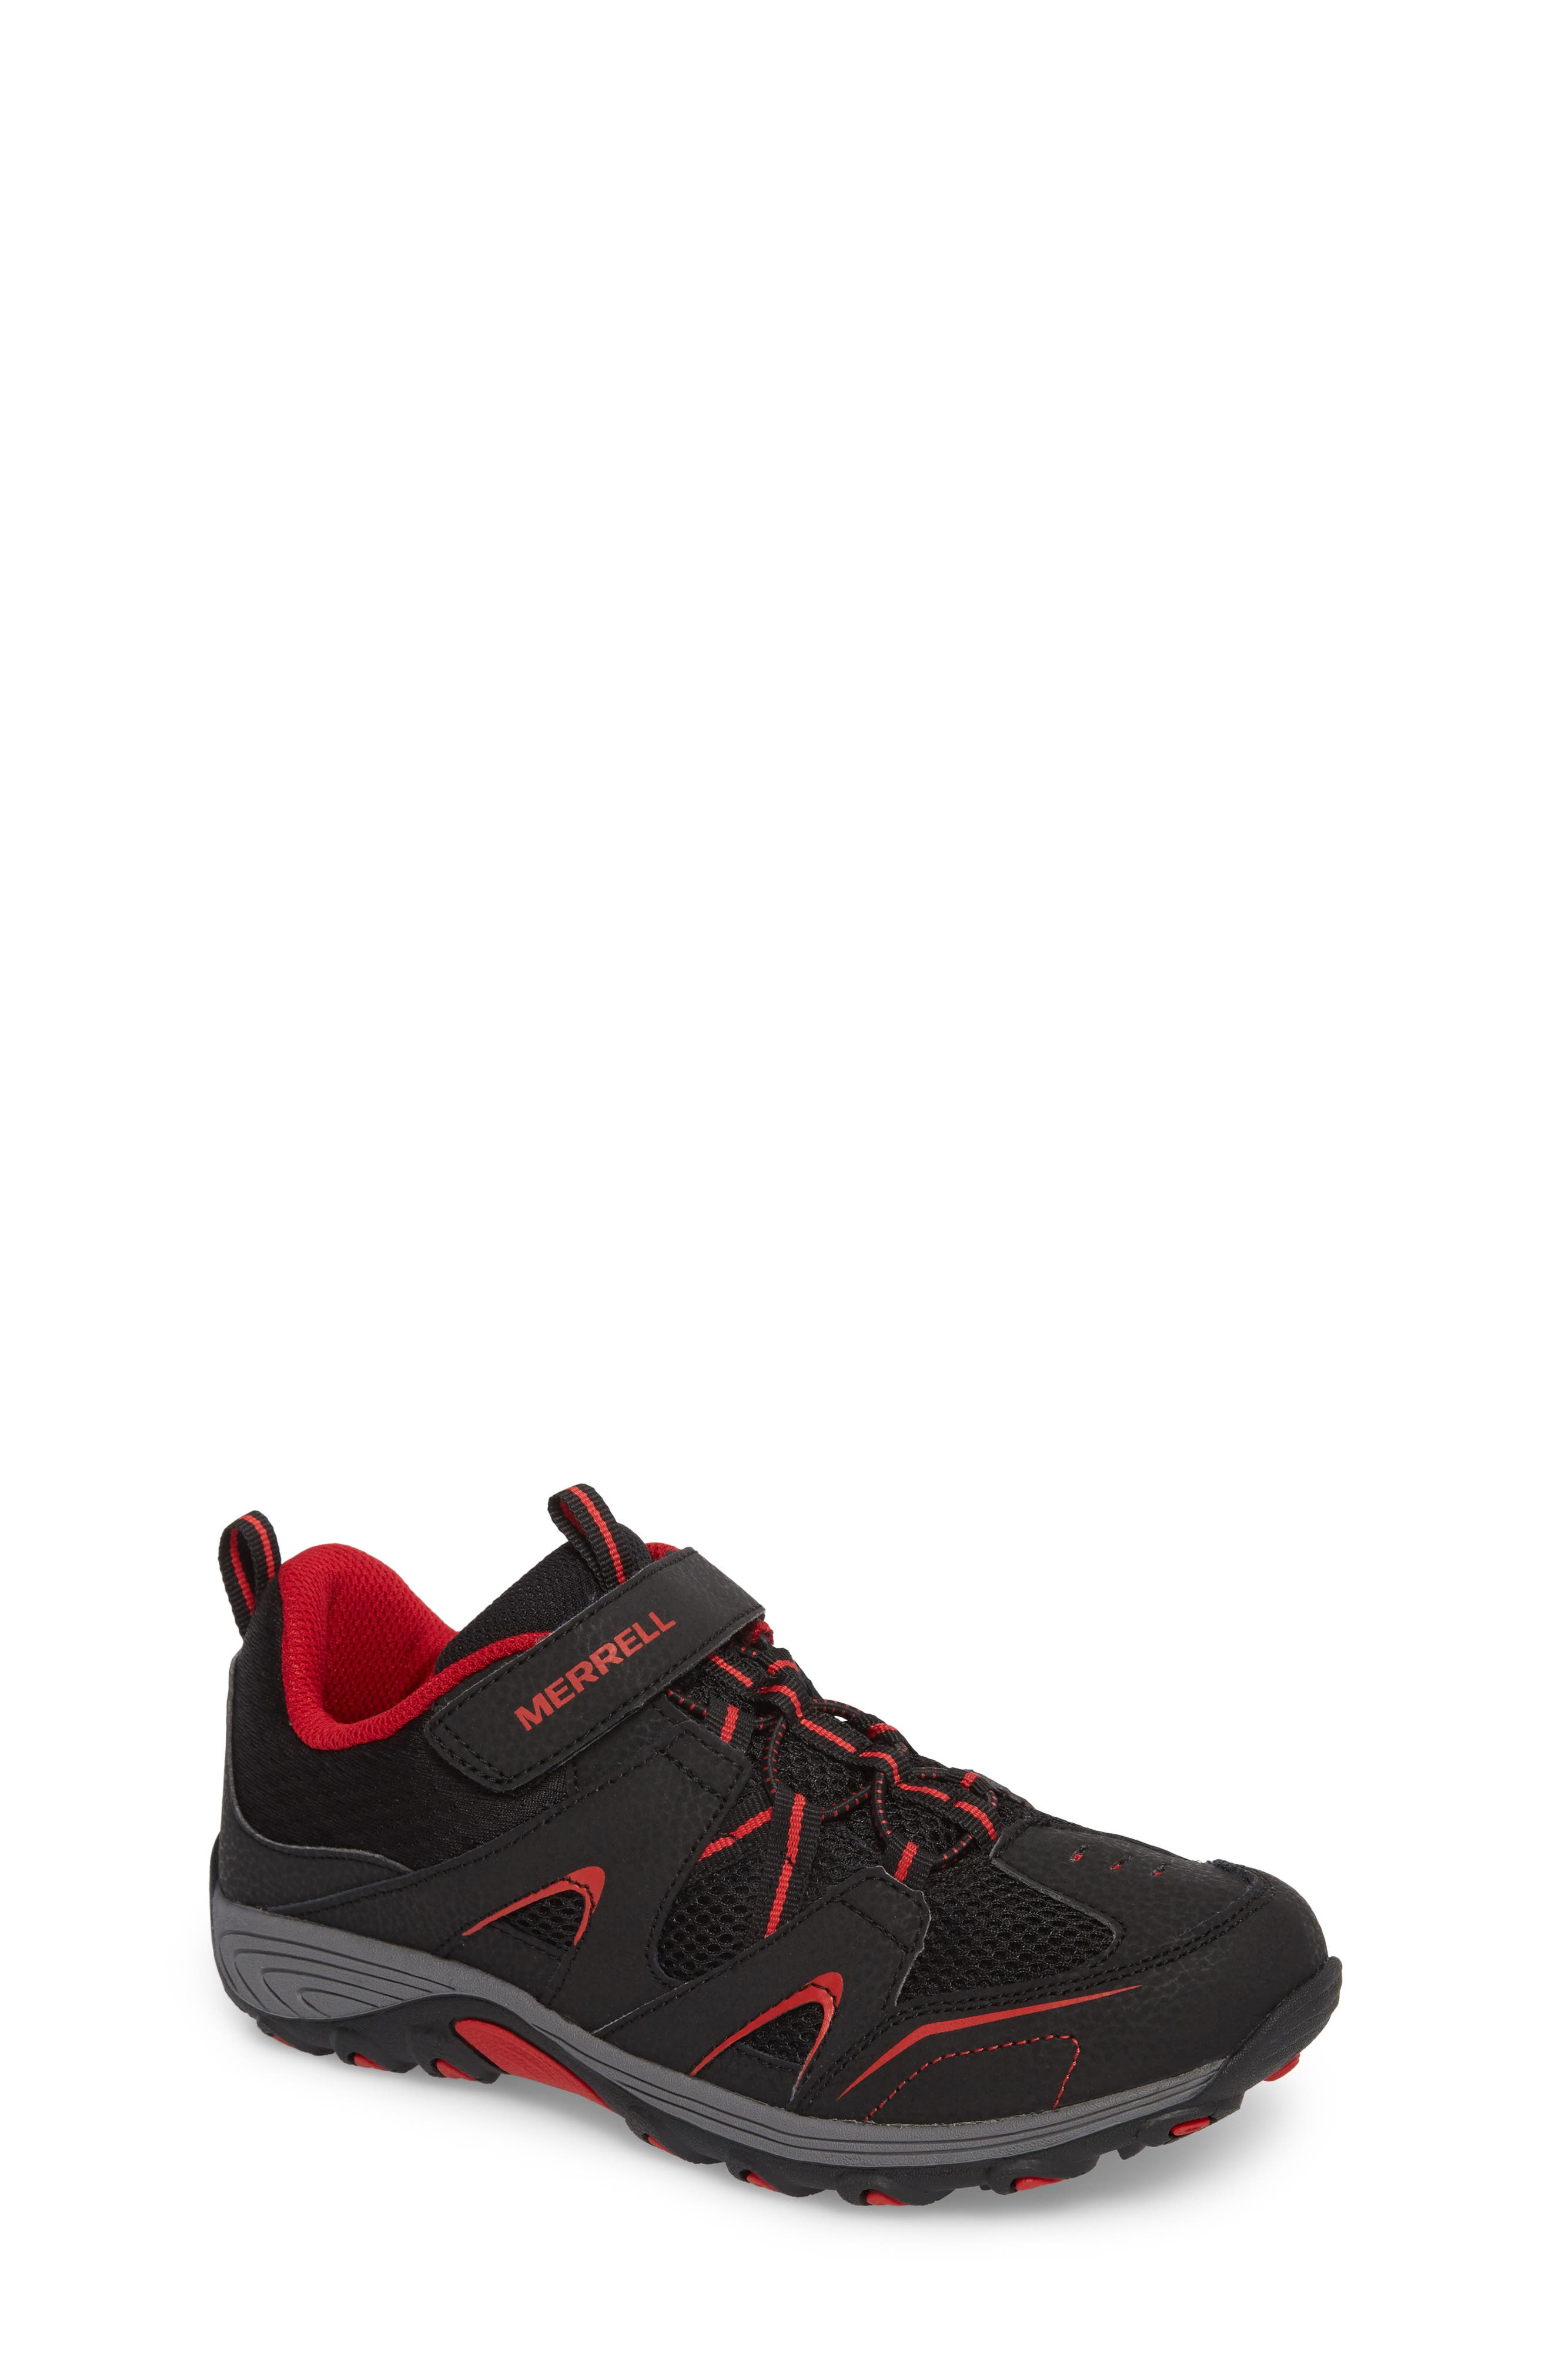 Trail Chaser Sneaker,                         Main,                         color, Black/ Red